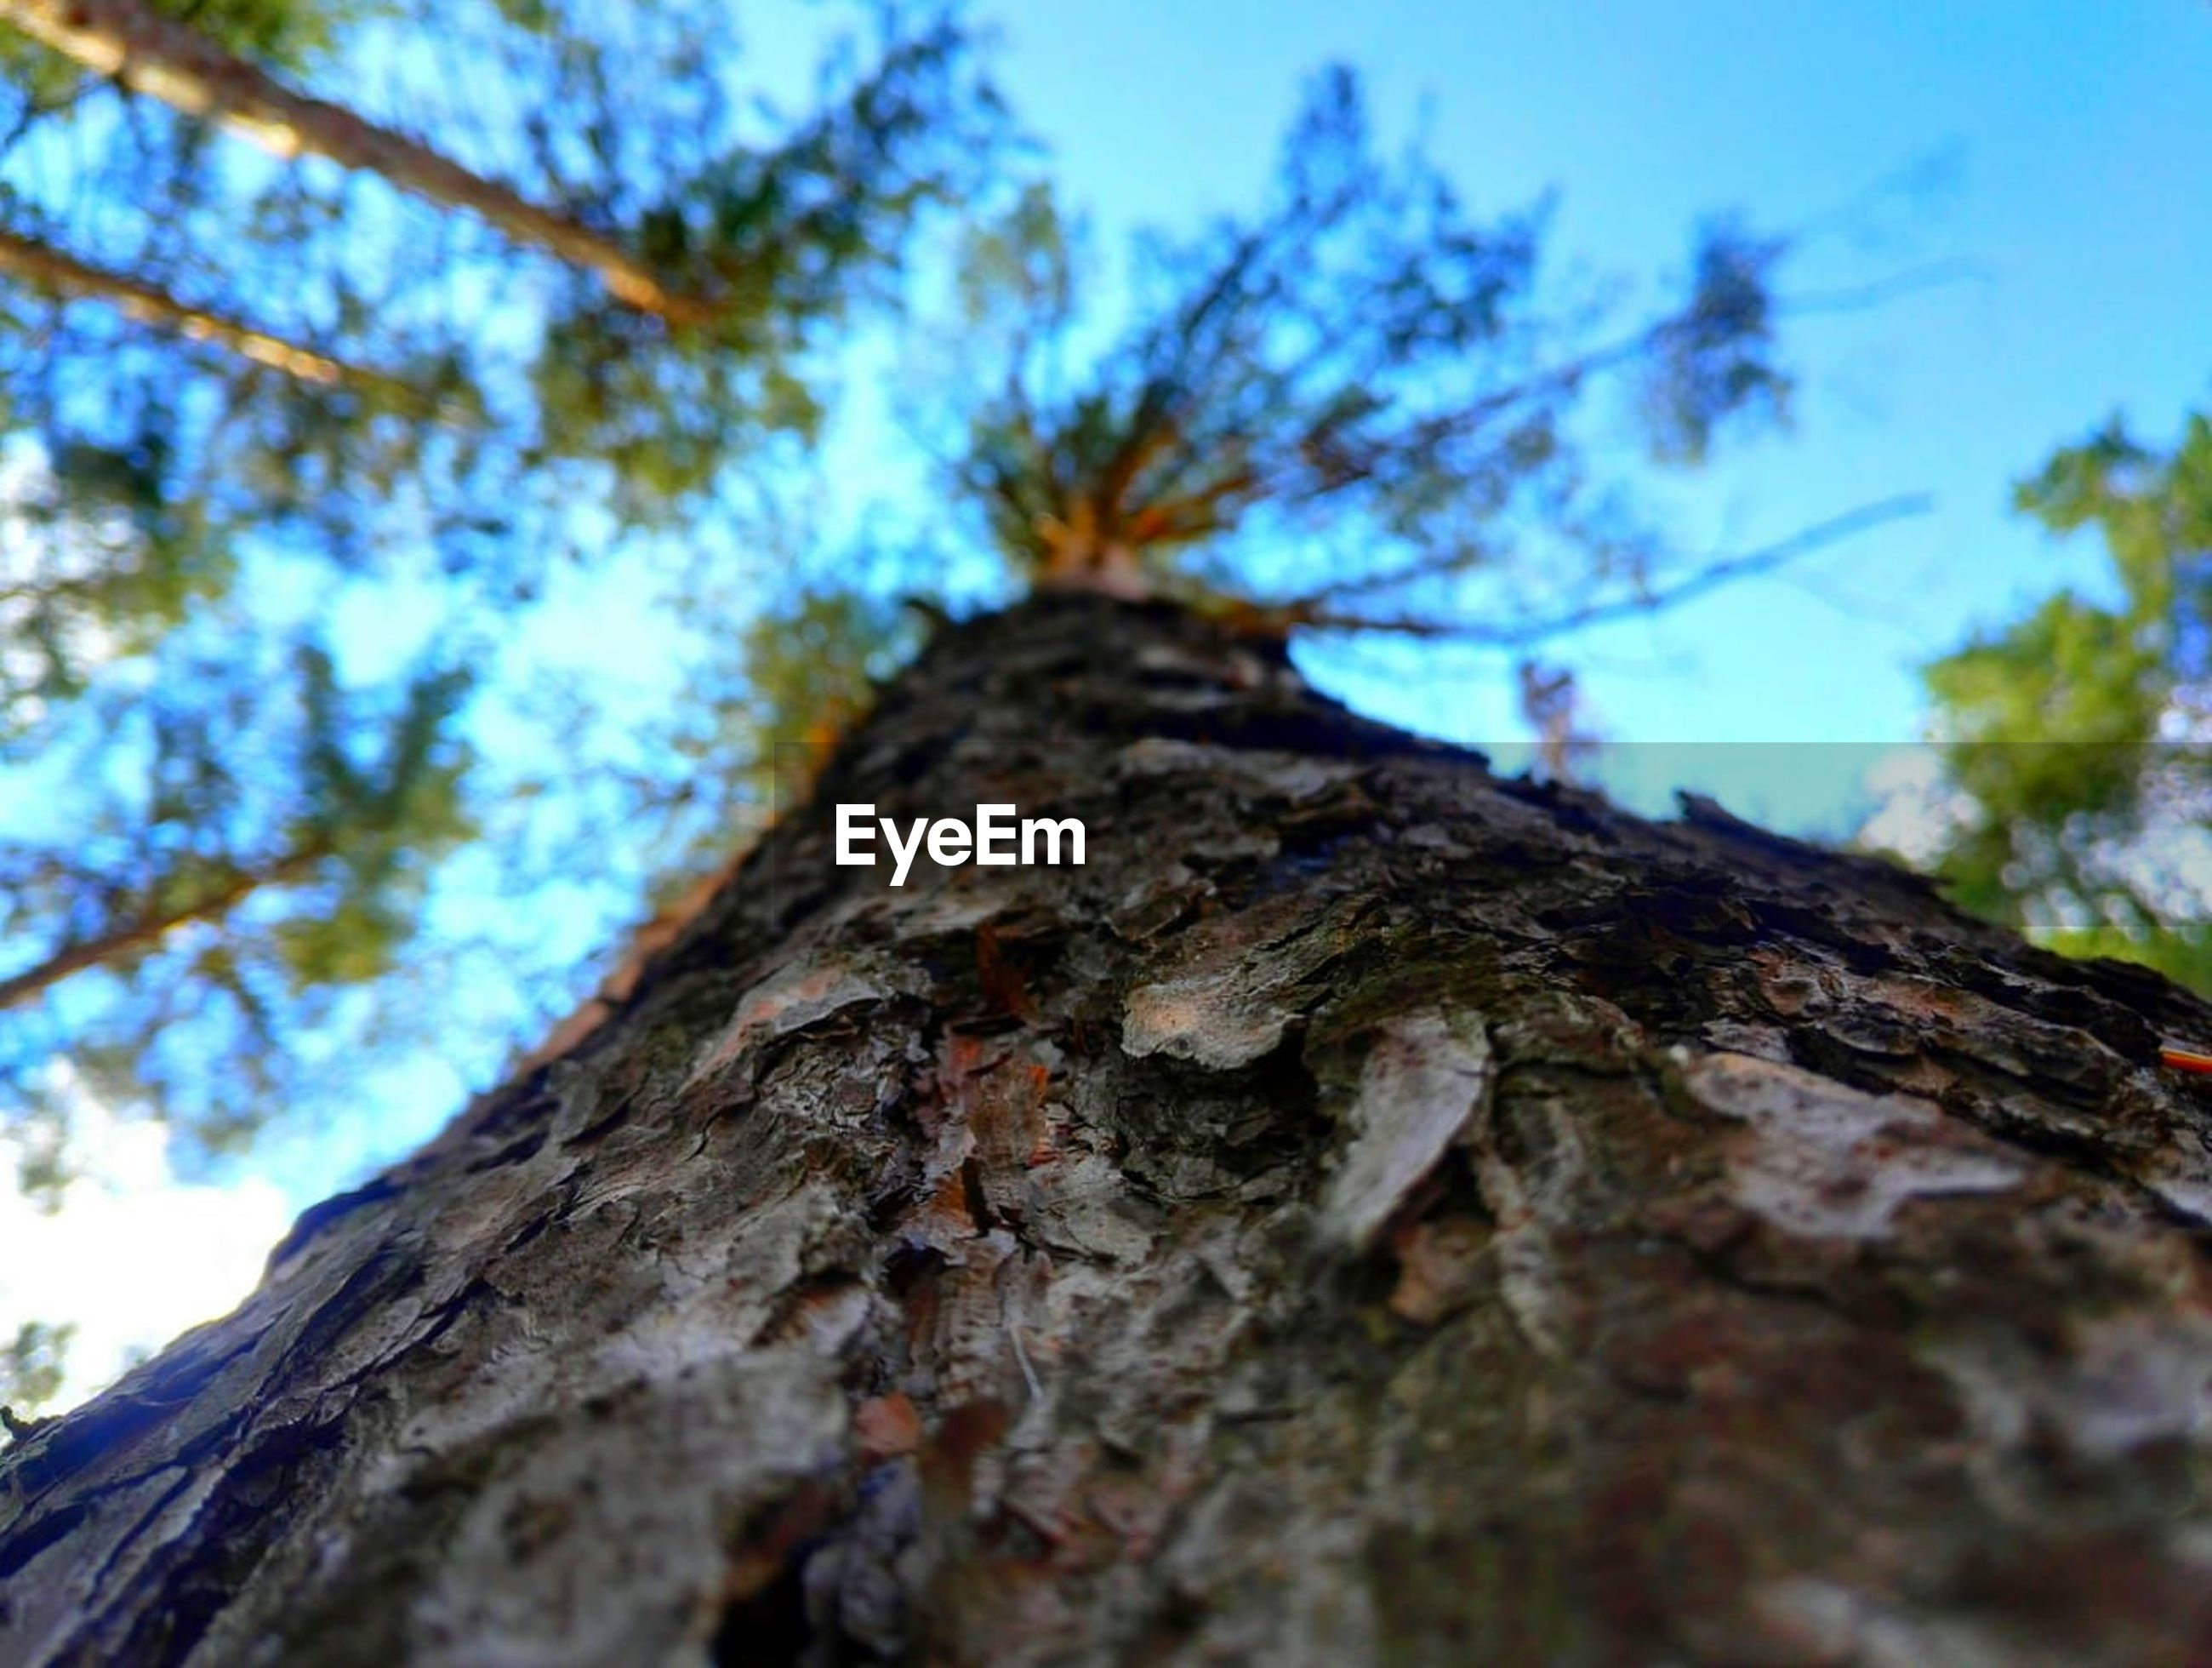 tree, tree trunk, trunk, plant, bark, textured, selective focus, nature, low angle view, growth, sky, branch, day, no people, rough, close-up, wood - material, outdoors, plant bark, focus on foreground, directly below, natural condition, lichen